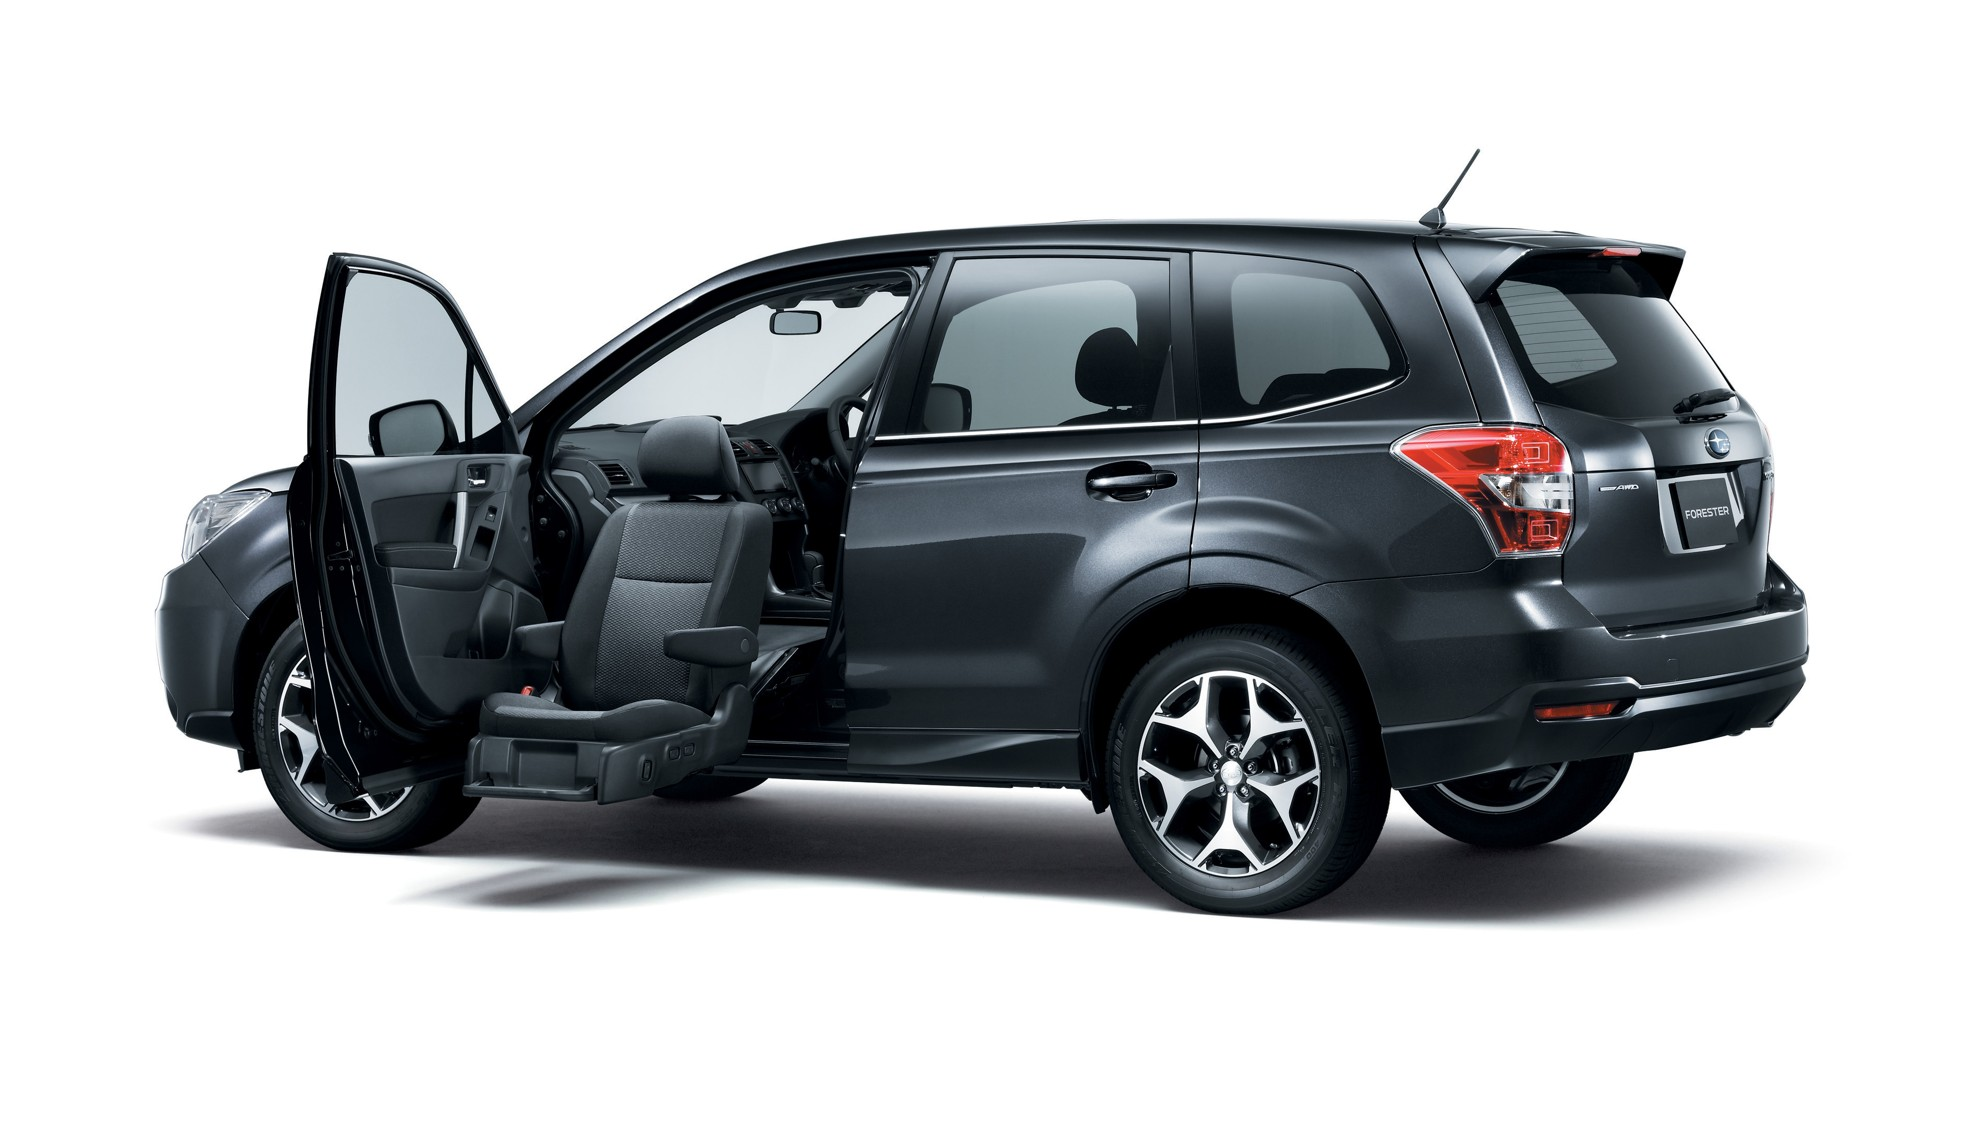 Practical design for the most user-friendly Forester ever Convenience